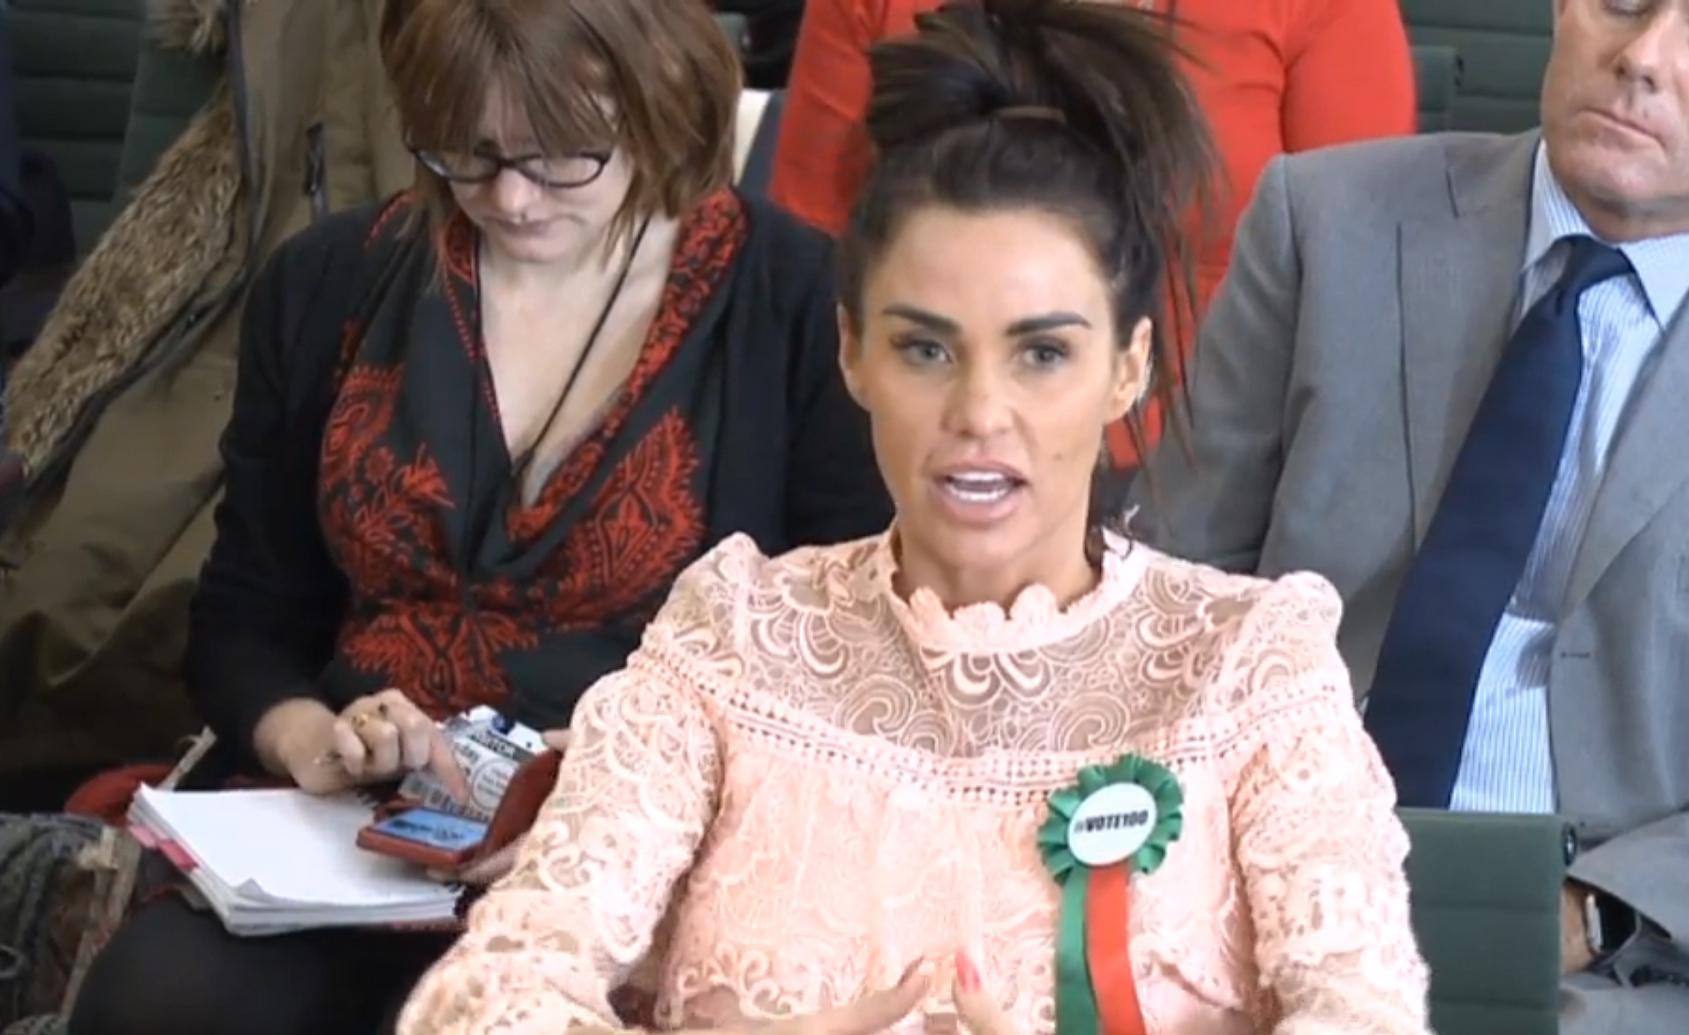 Katie Price, giving evidence to the Commons Petitions Committee at the House of Commons in London, as she calls for online abuse to be made a specific offence.